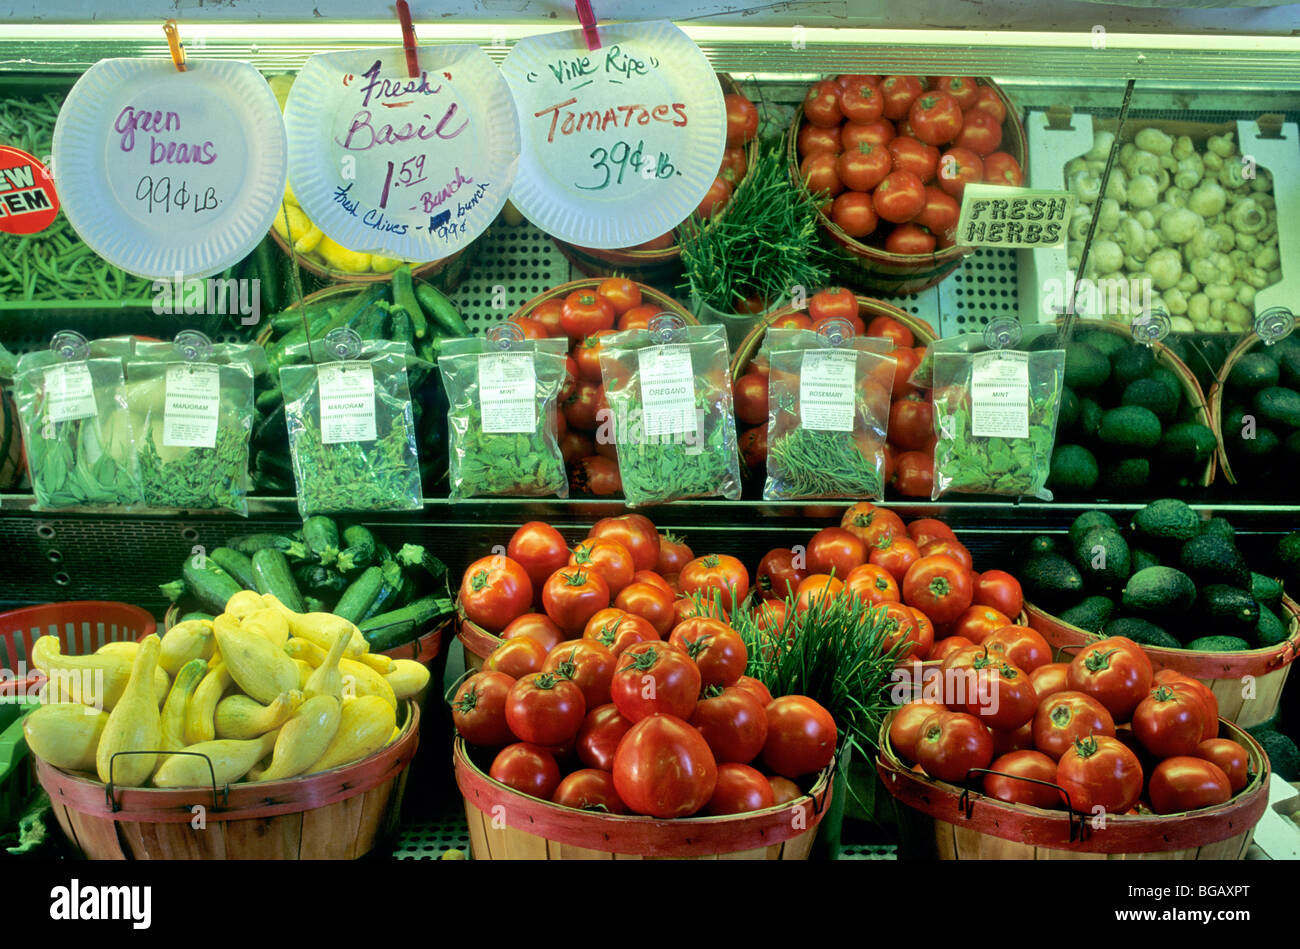 Fresh vegetables at produce stand, California - Stock Image